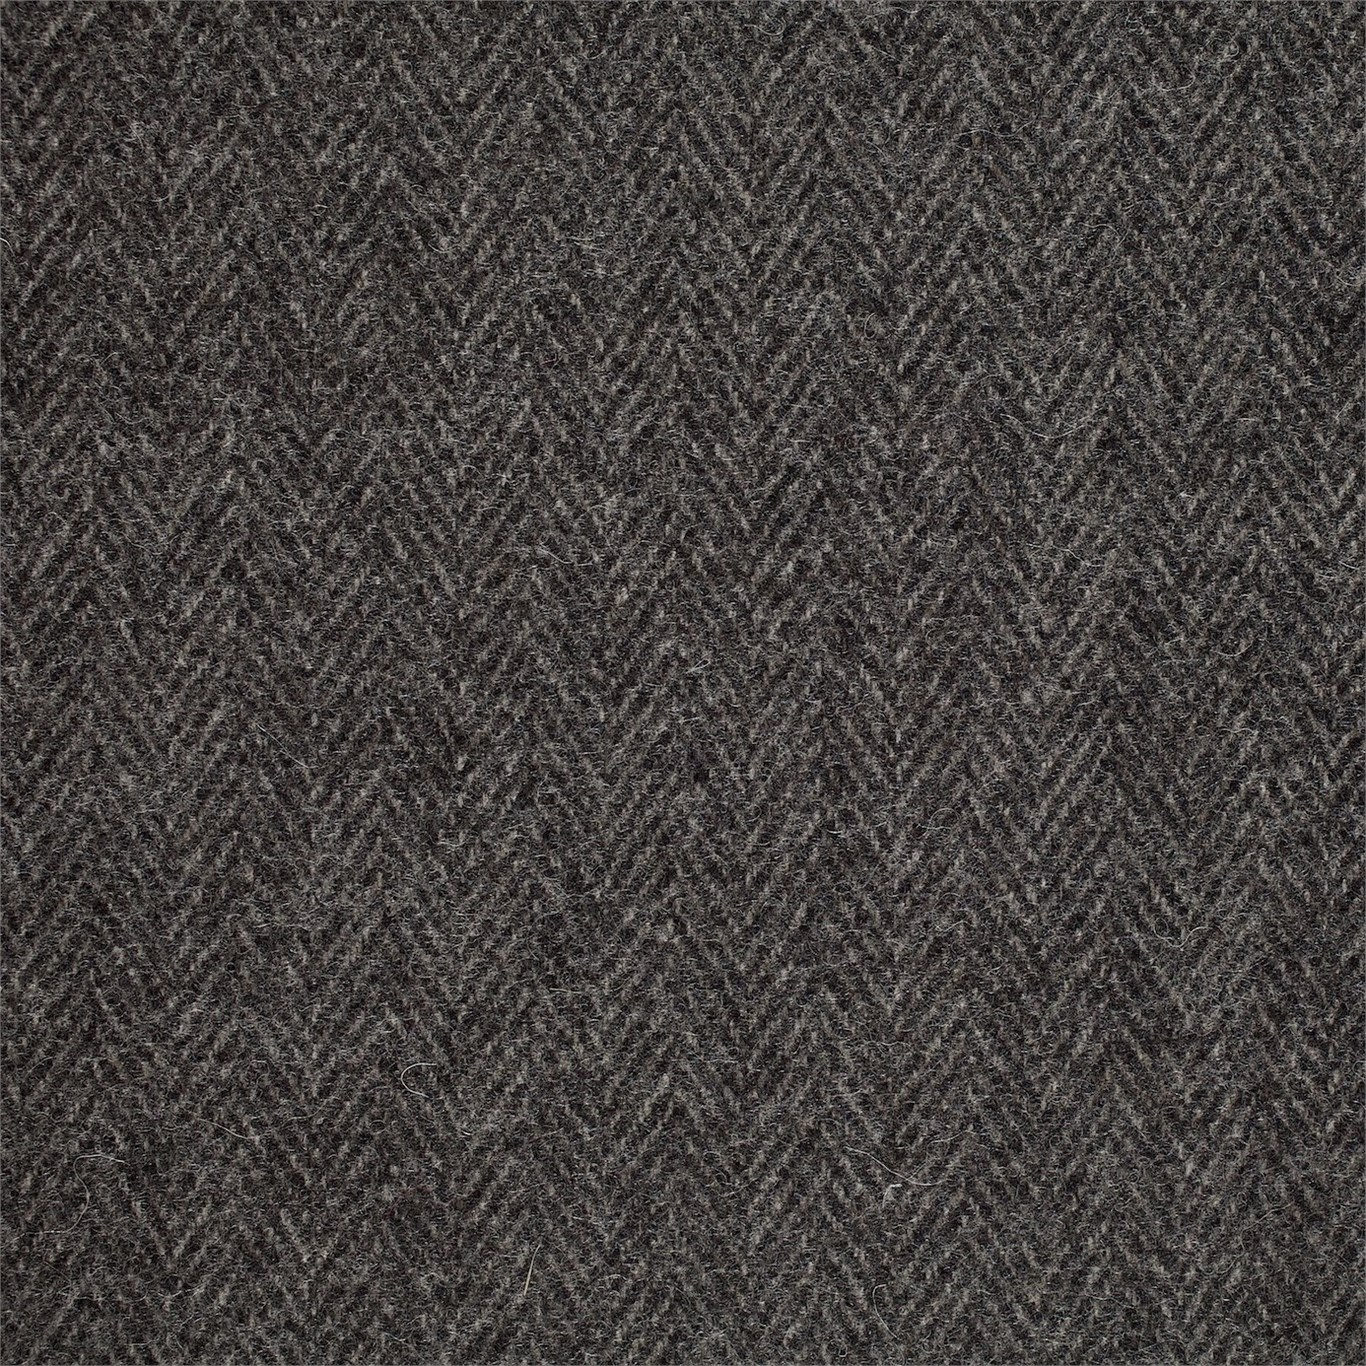 Image of Sanderson Portland Charcoal Fabric 233237